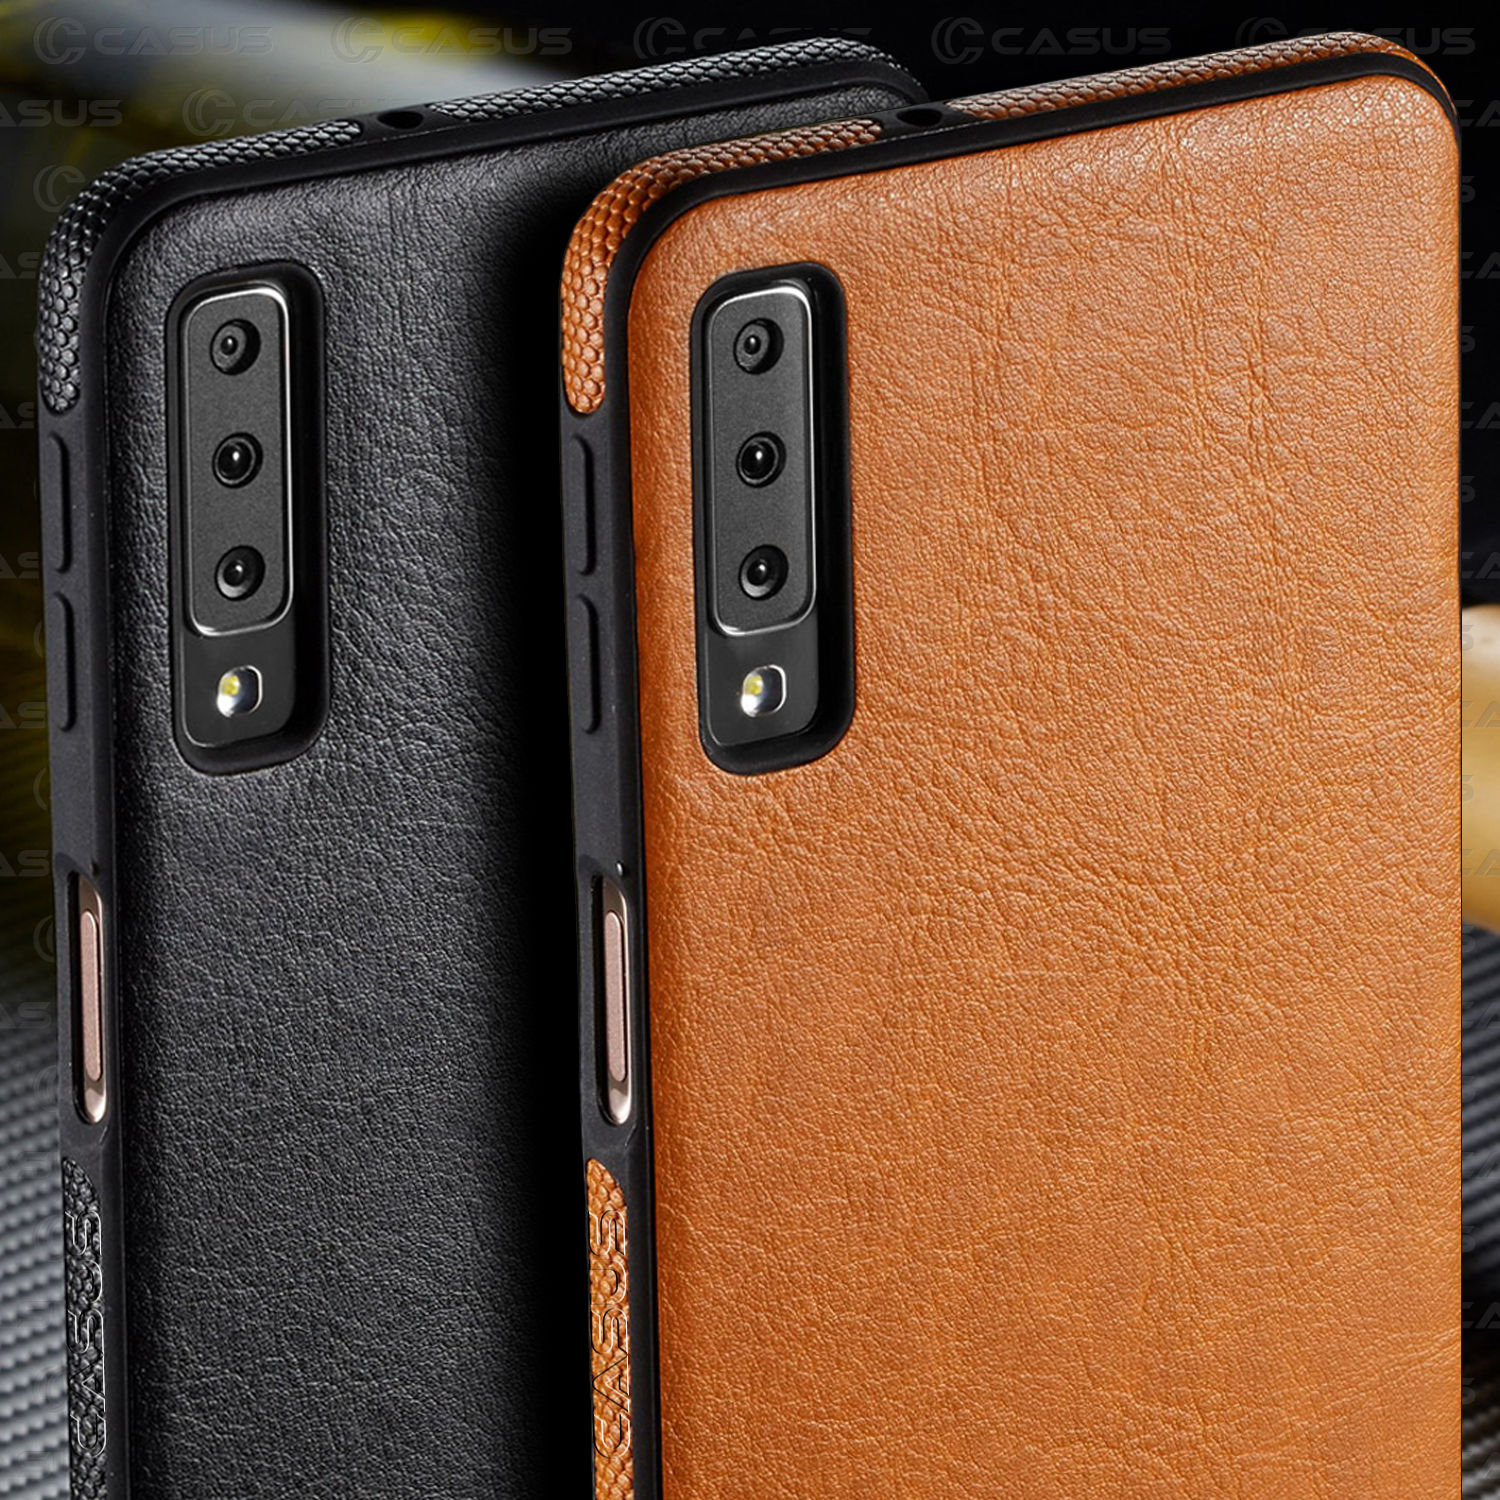 For <font><b>Samsung</b></font> <font><b>Galaxy</b></font> A10 A50 <font><b>Case</b></font> <font><b>Luxury</b></font> Vintage PU Leather Back Thin Cover <font><b>Case</b></font> For <font><b>Samsung</b></font> <font><b>Galaxy</b></font> <font><b>A30</b></font> A40 A70 M10 M20 2019 <font><b>Case</b></font> image